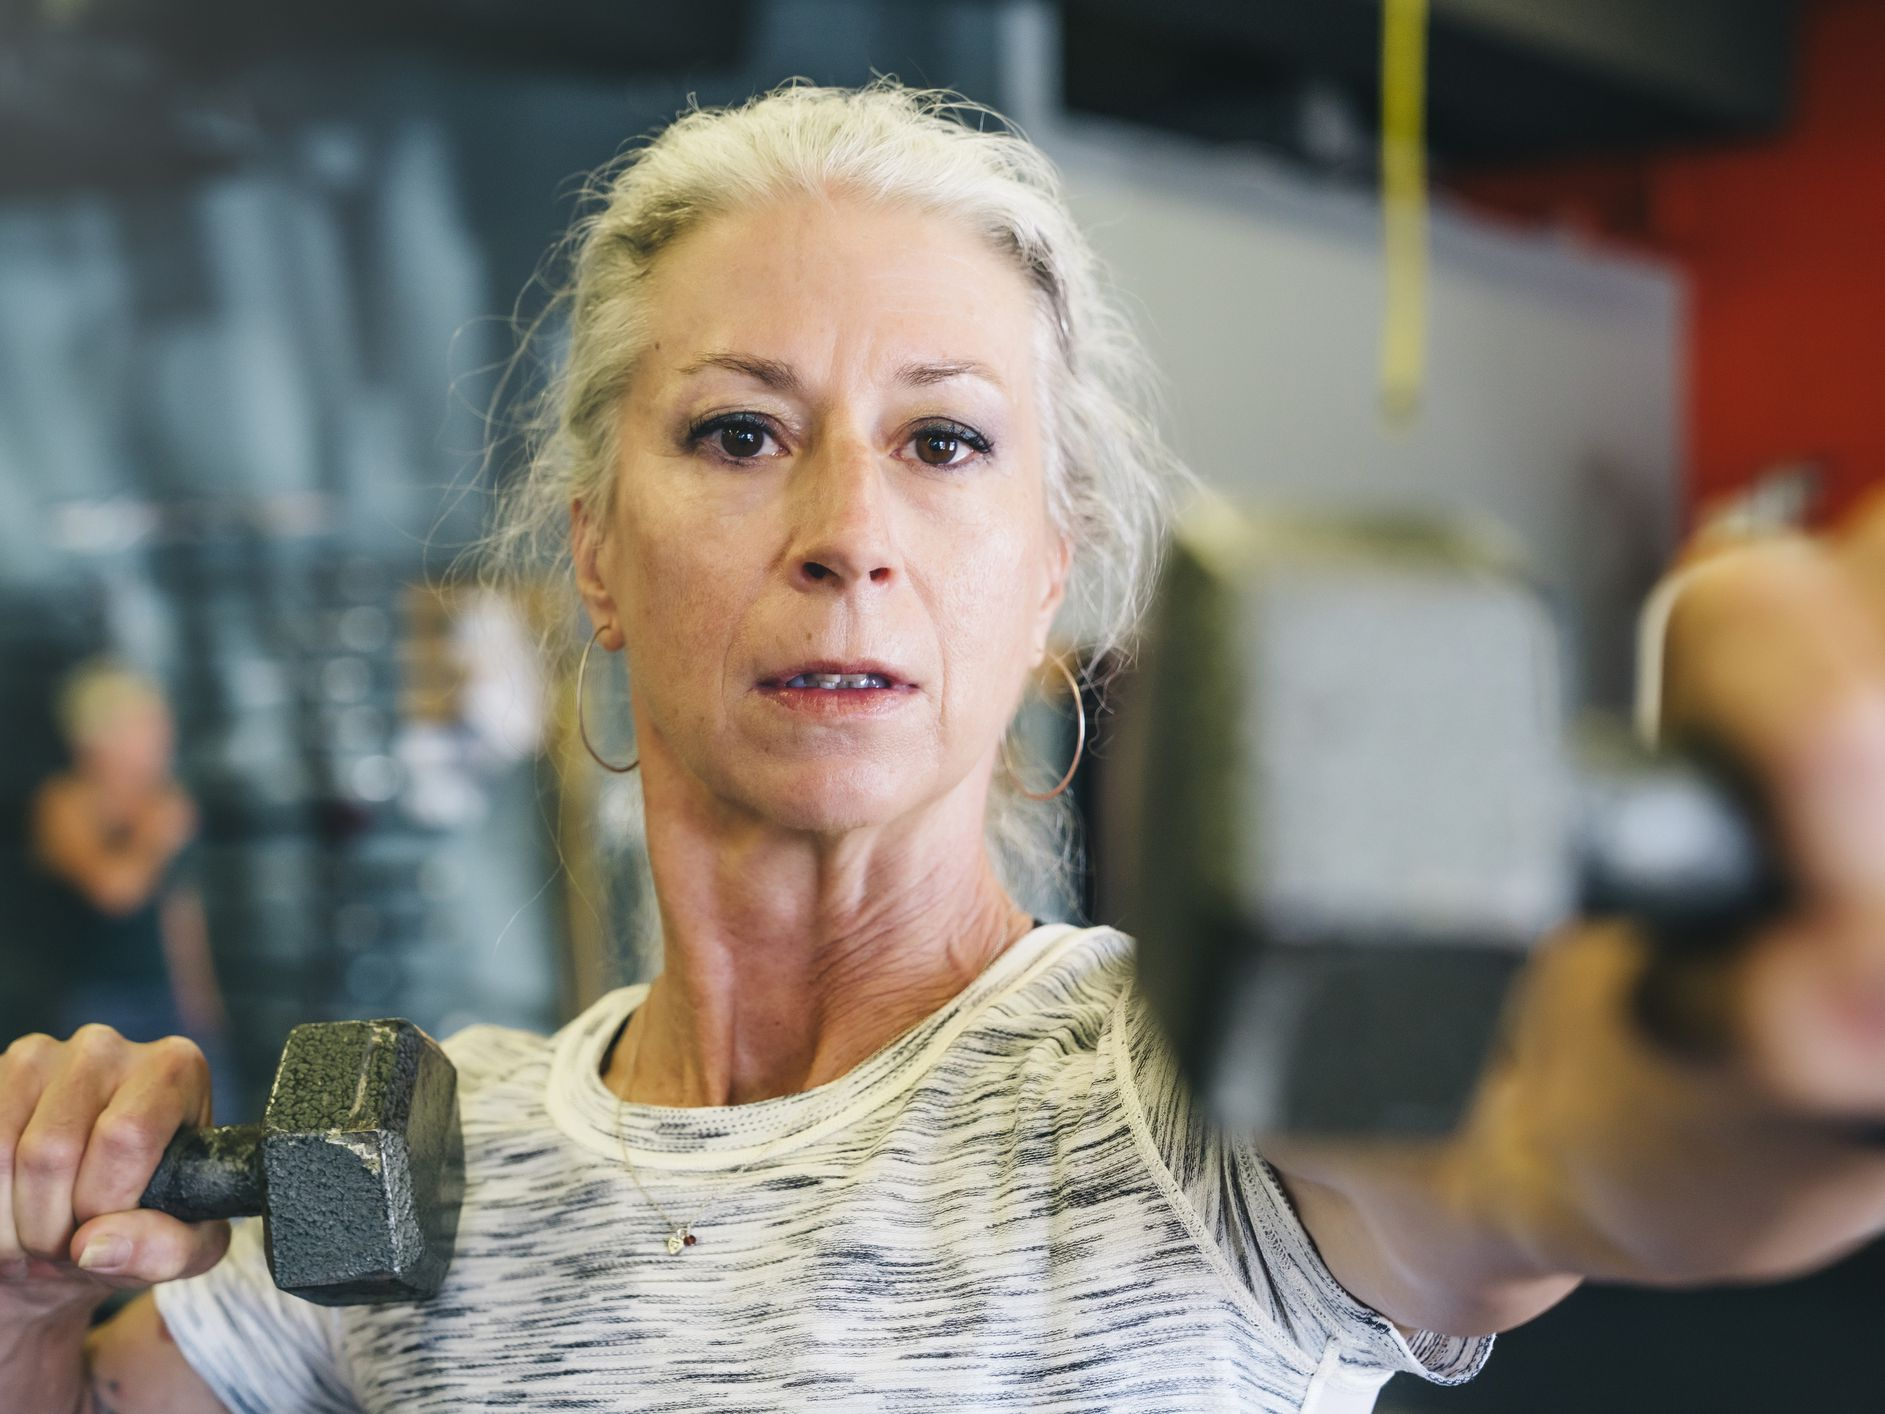 Total Body Strength Workout For Seniors